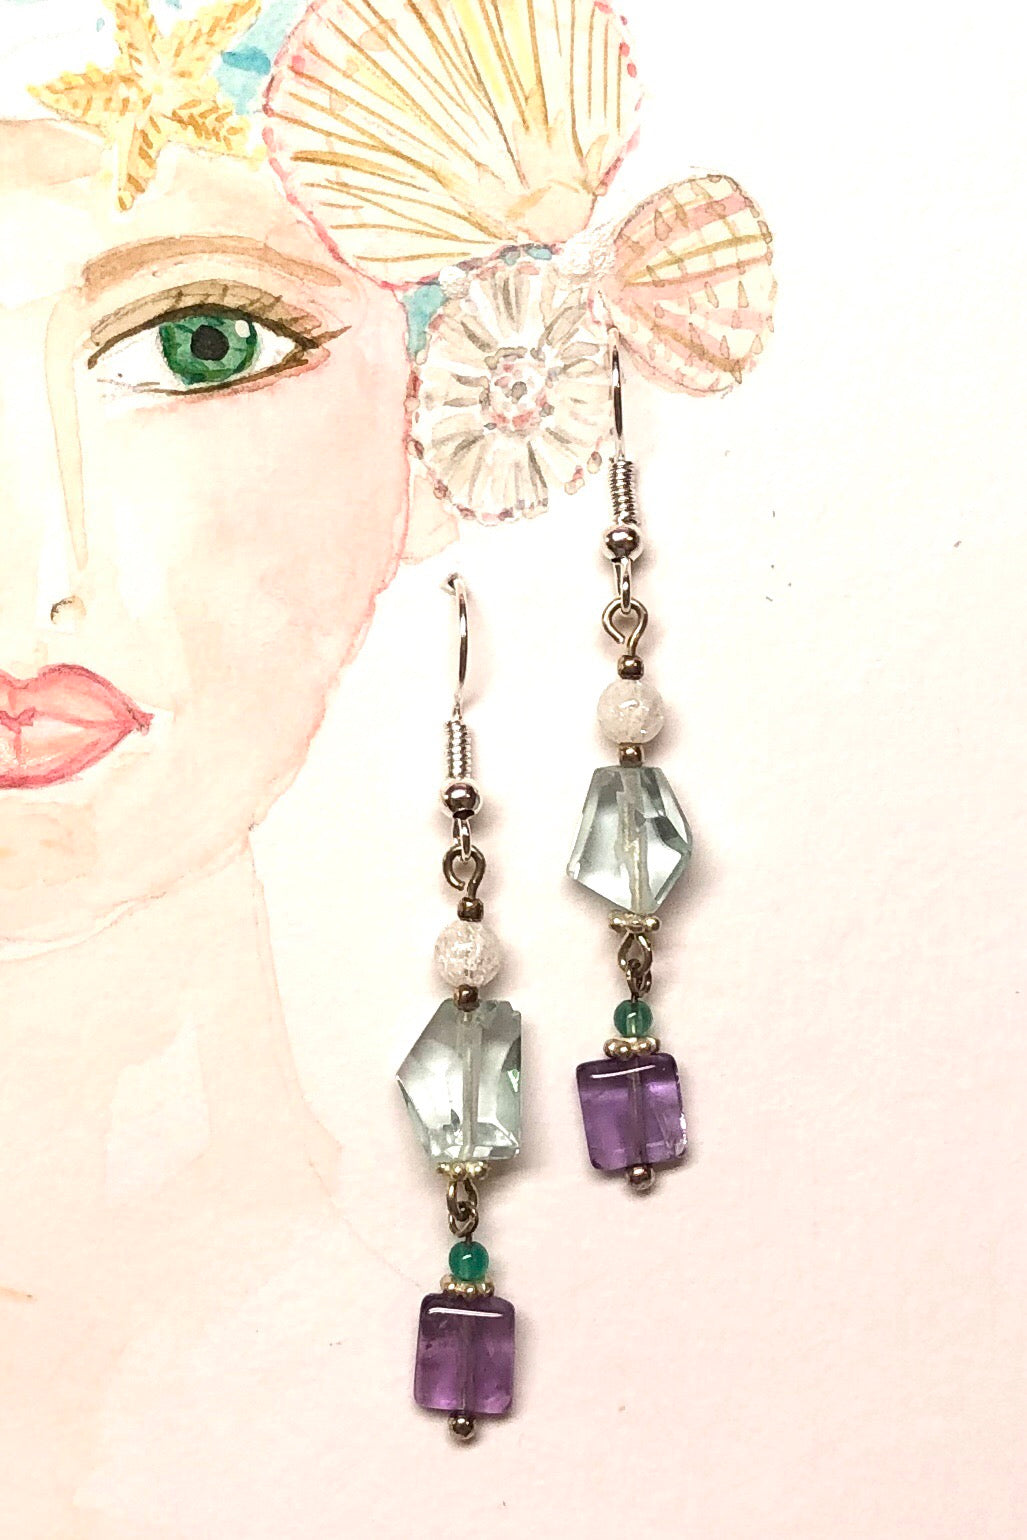 The Serendipity Earrings are handmade earrings in soft blues, and amethyst gemstones featuring 5.2cm long total and some stones are village cut.